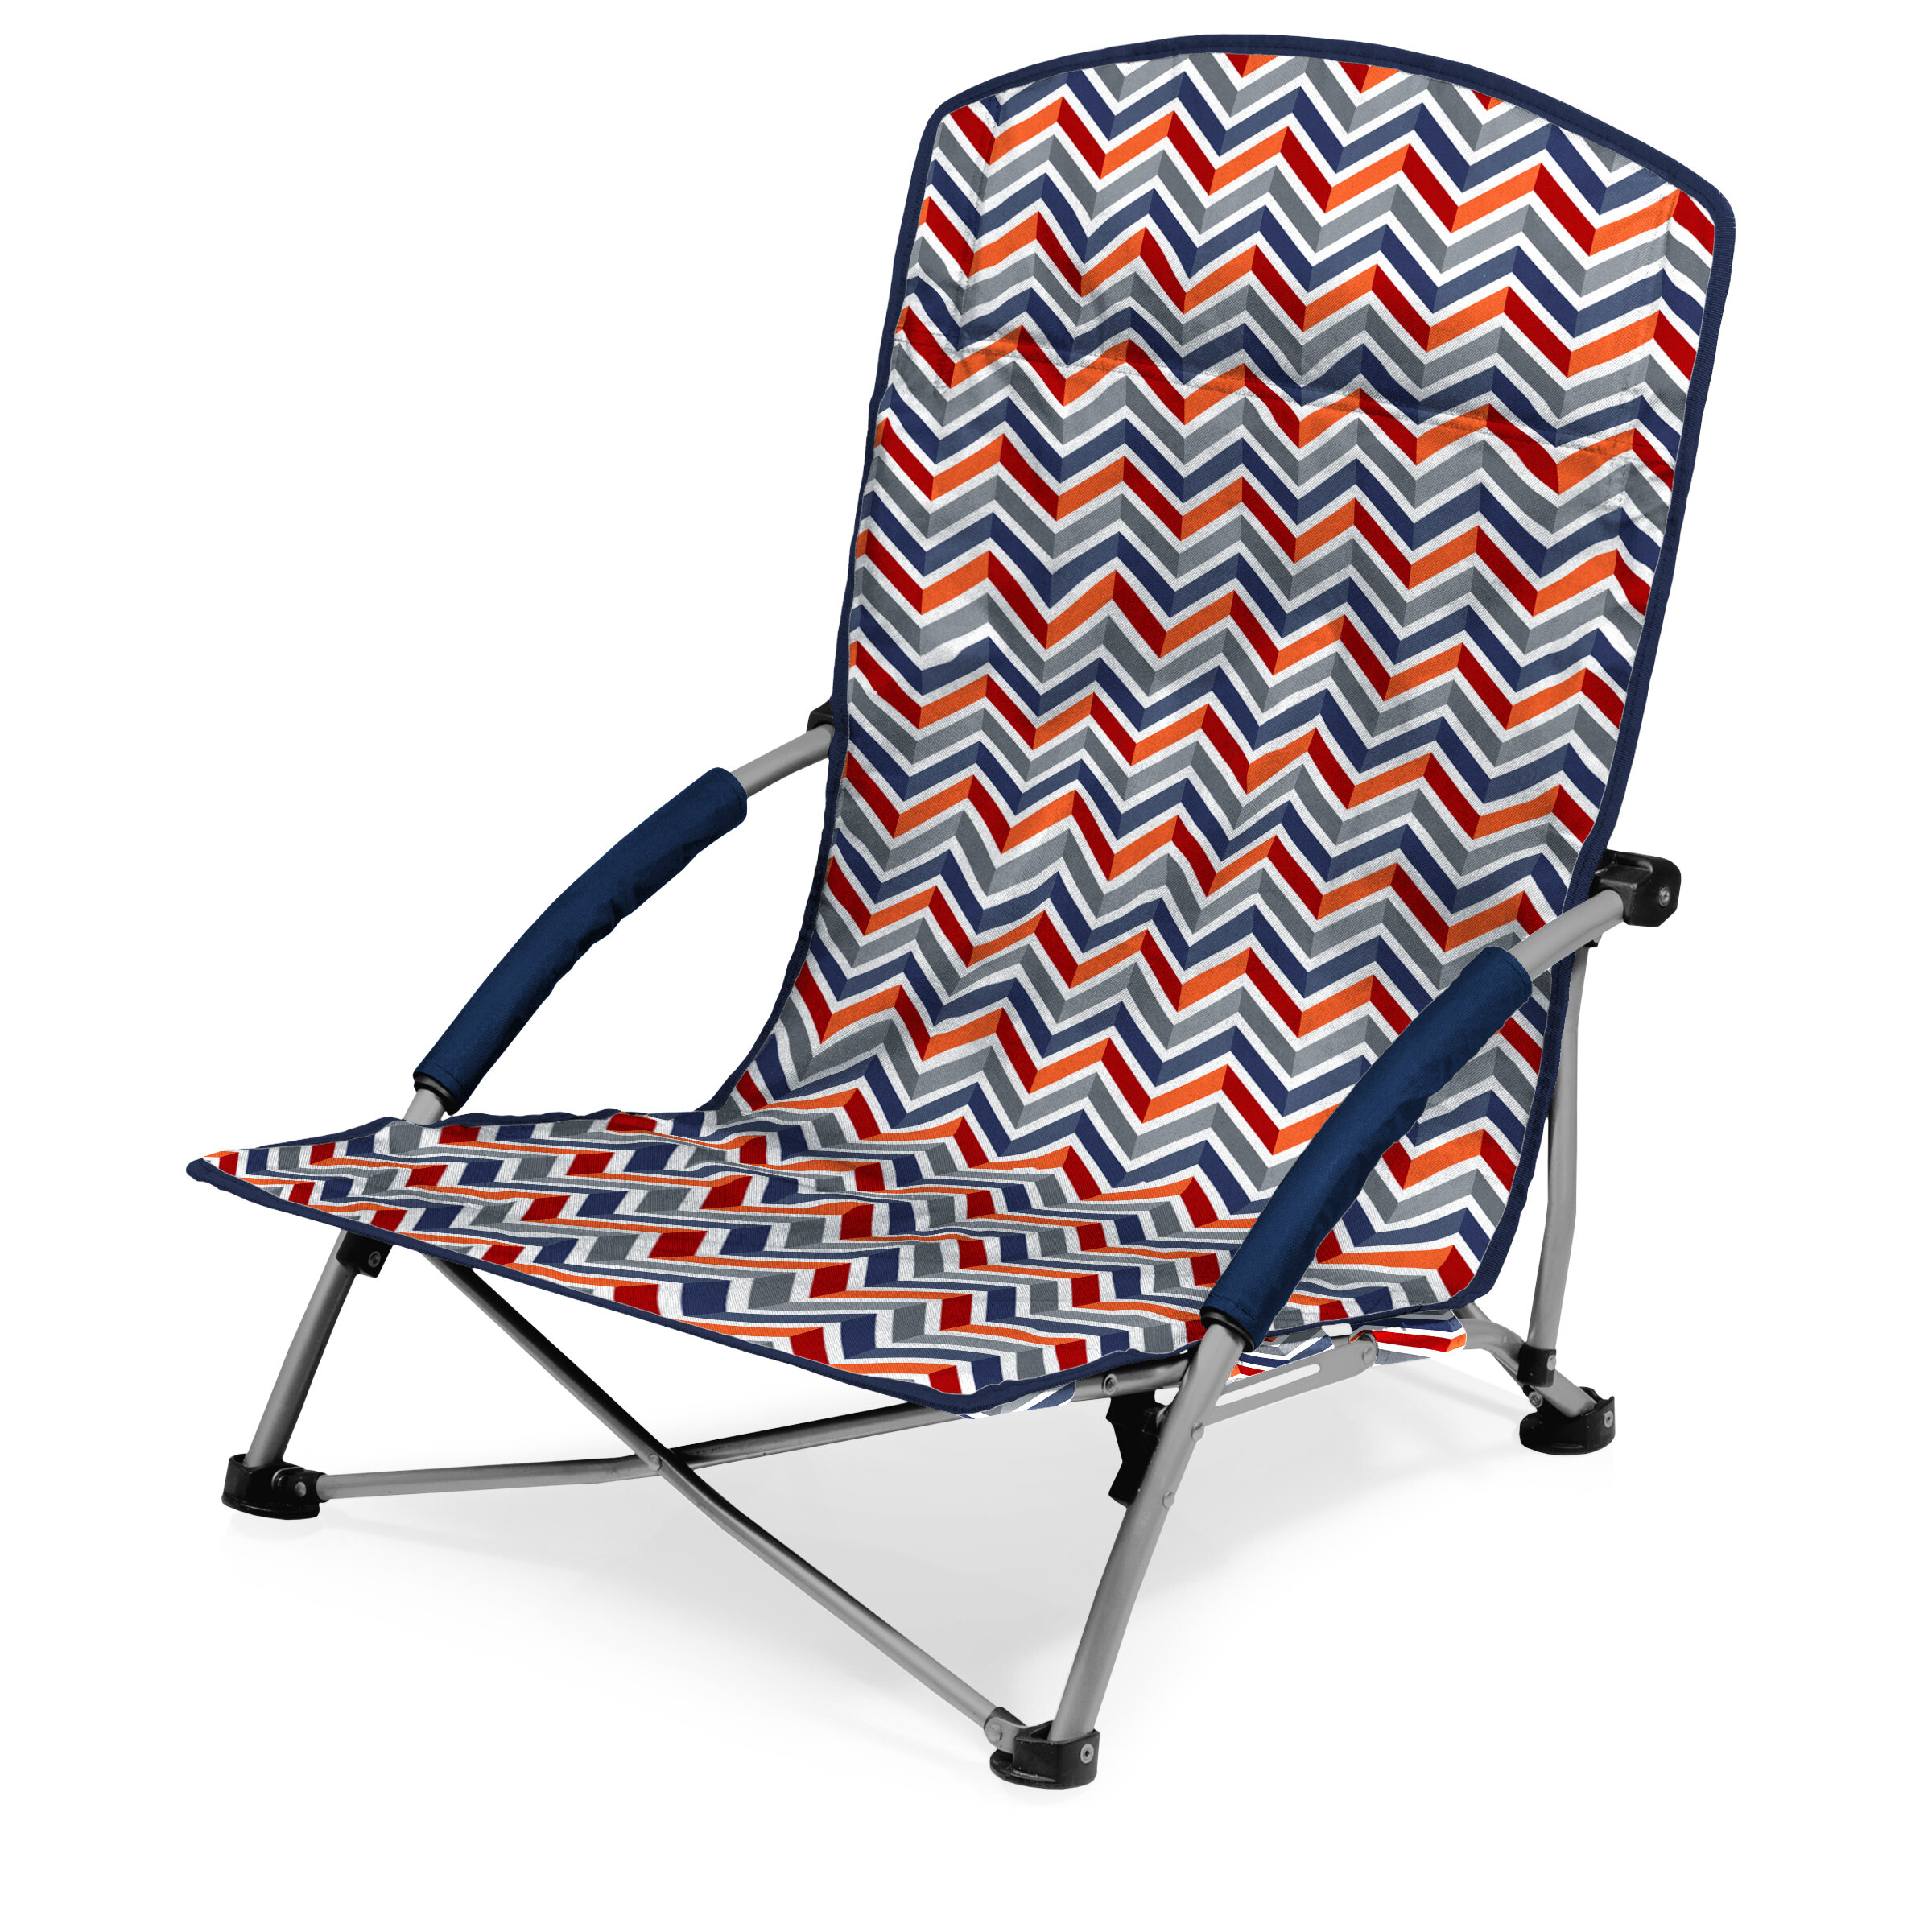 ozark chairs canopy trail with fold applications folding furniture beach chair up within out walmart on